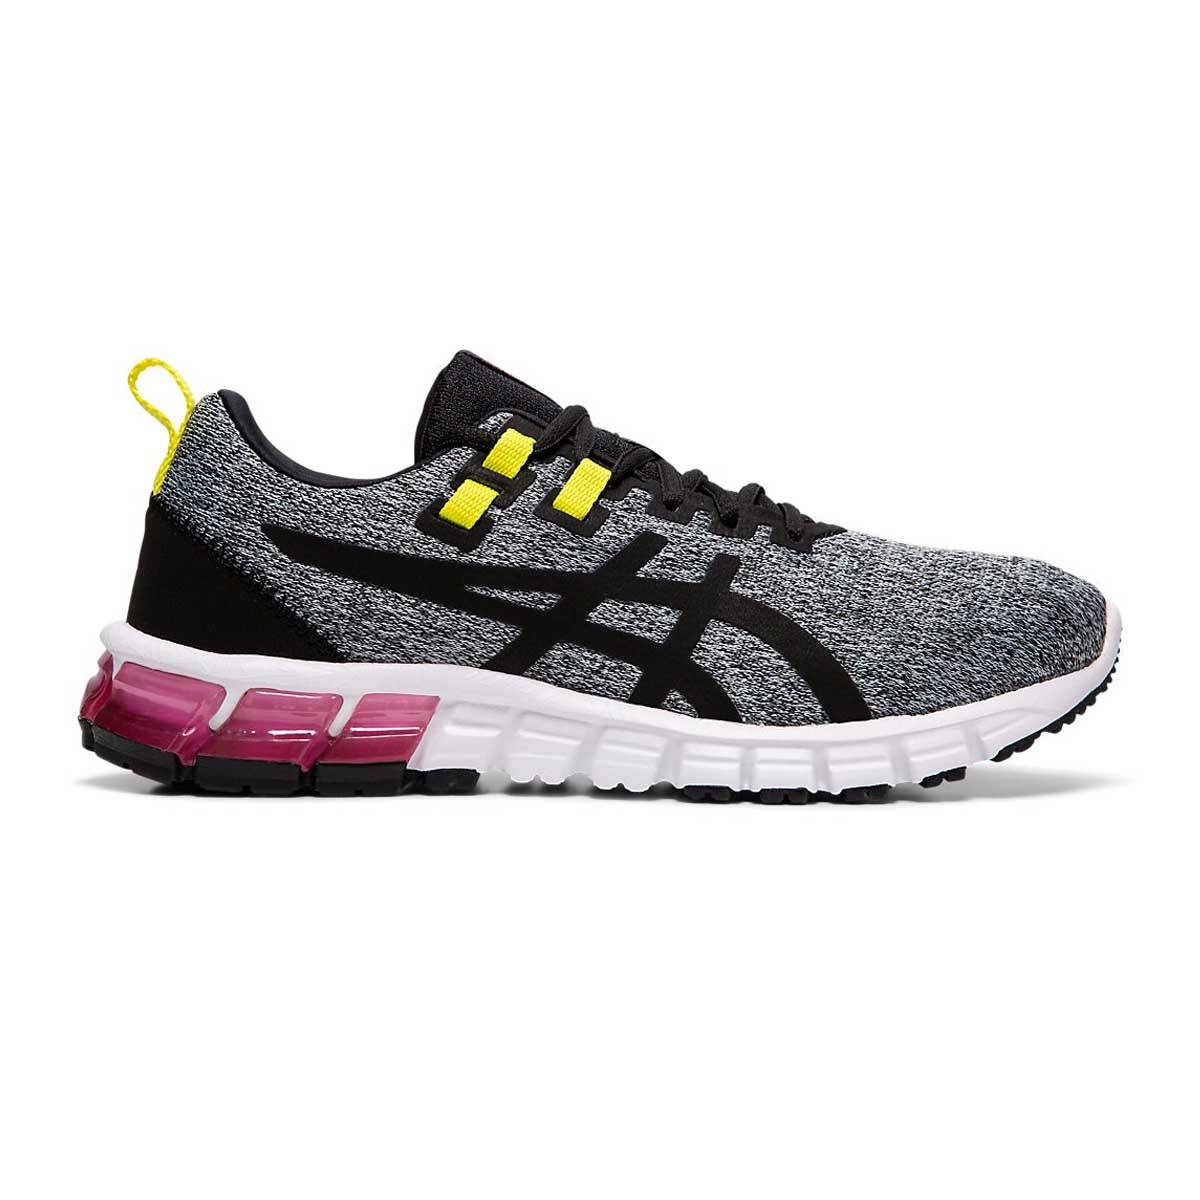 QUANTUM GEL RUNNING 002San SHOES ASICS 1022A115 90 WOMEN CBWQerdxo